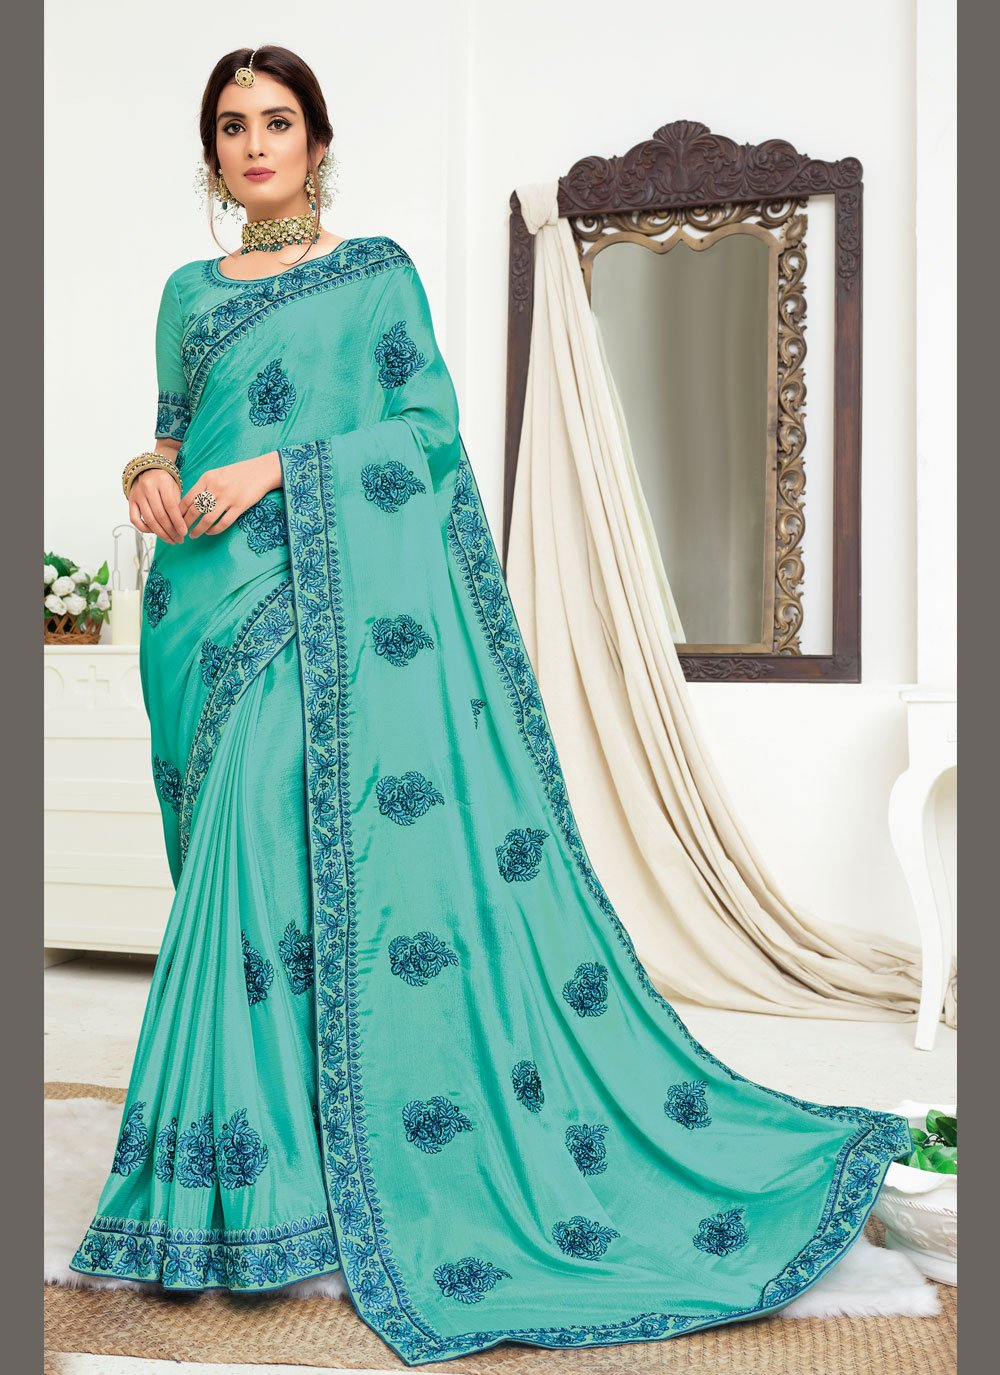 Embroidered Turquoise Faux Chiffon Trendy Saree